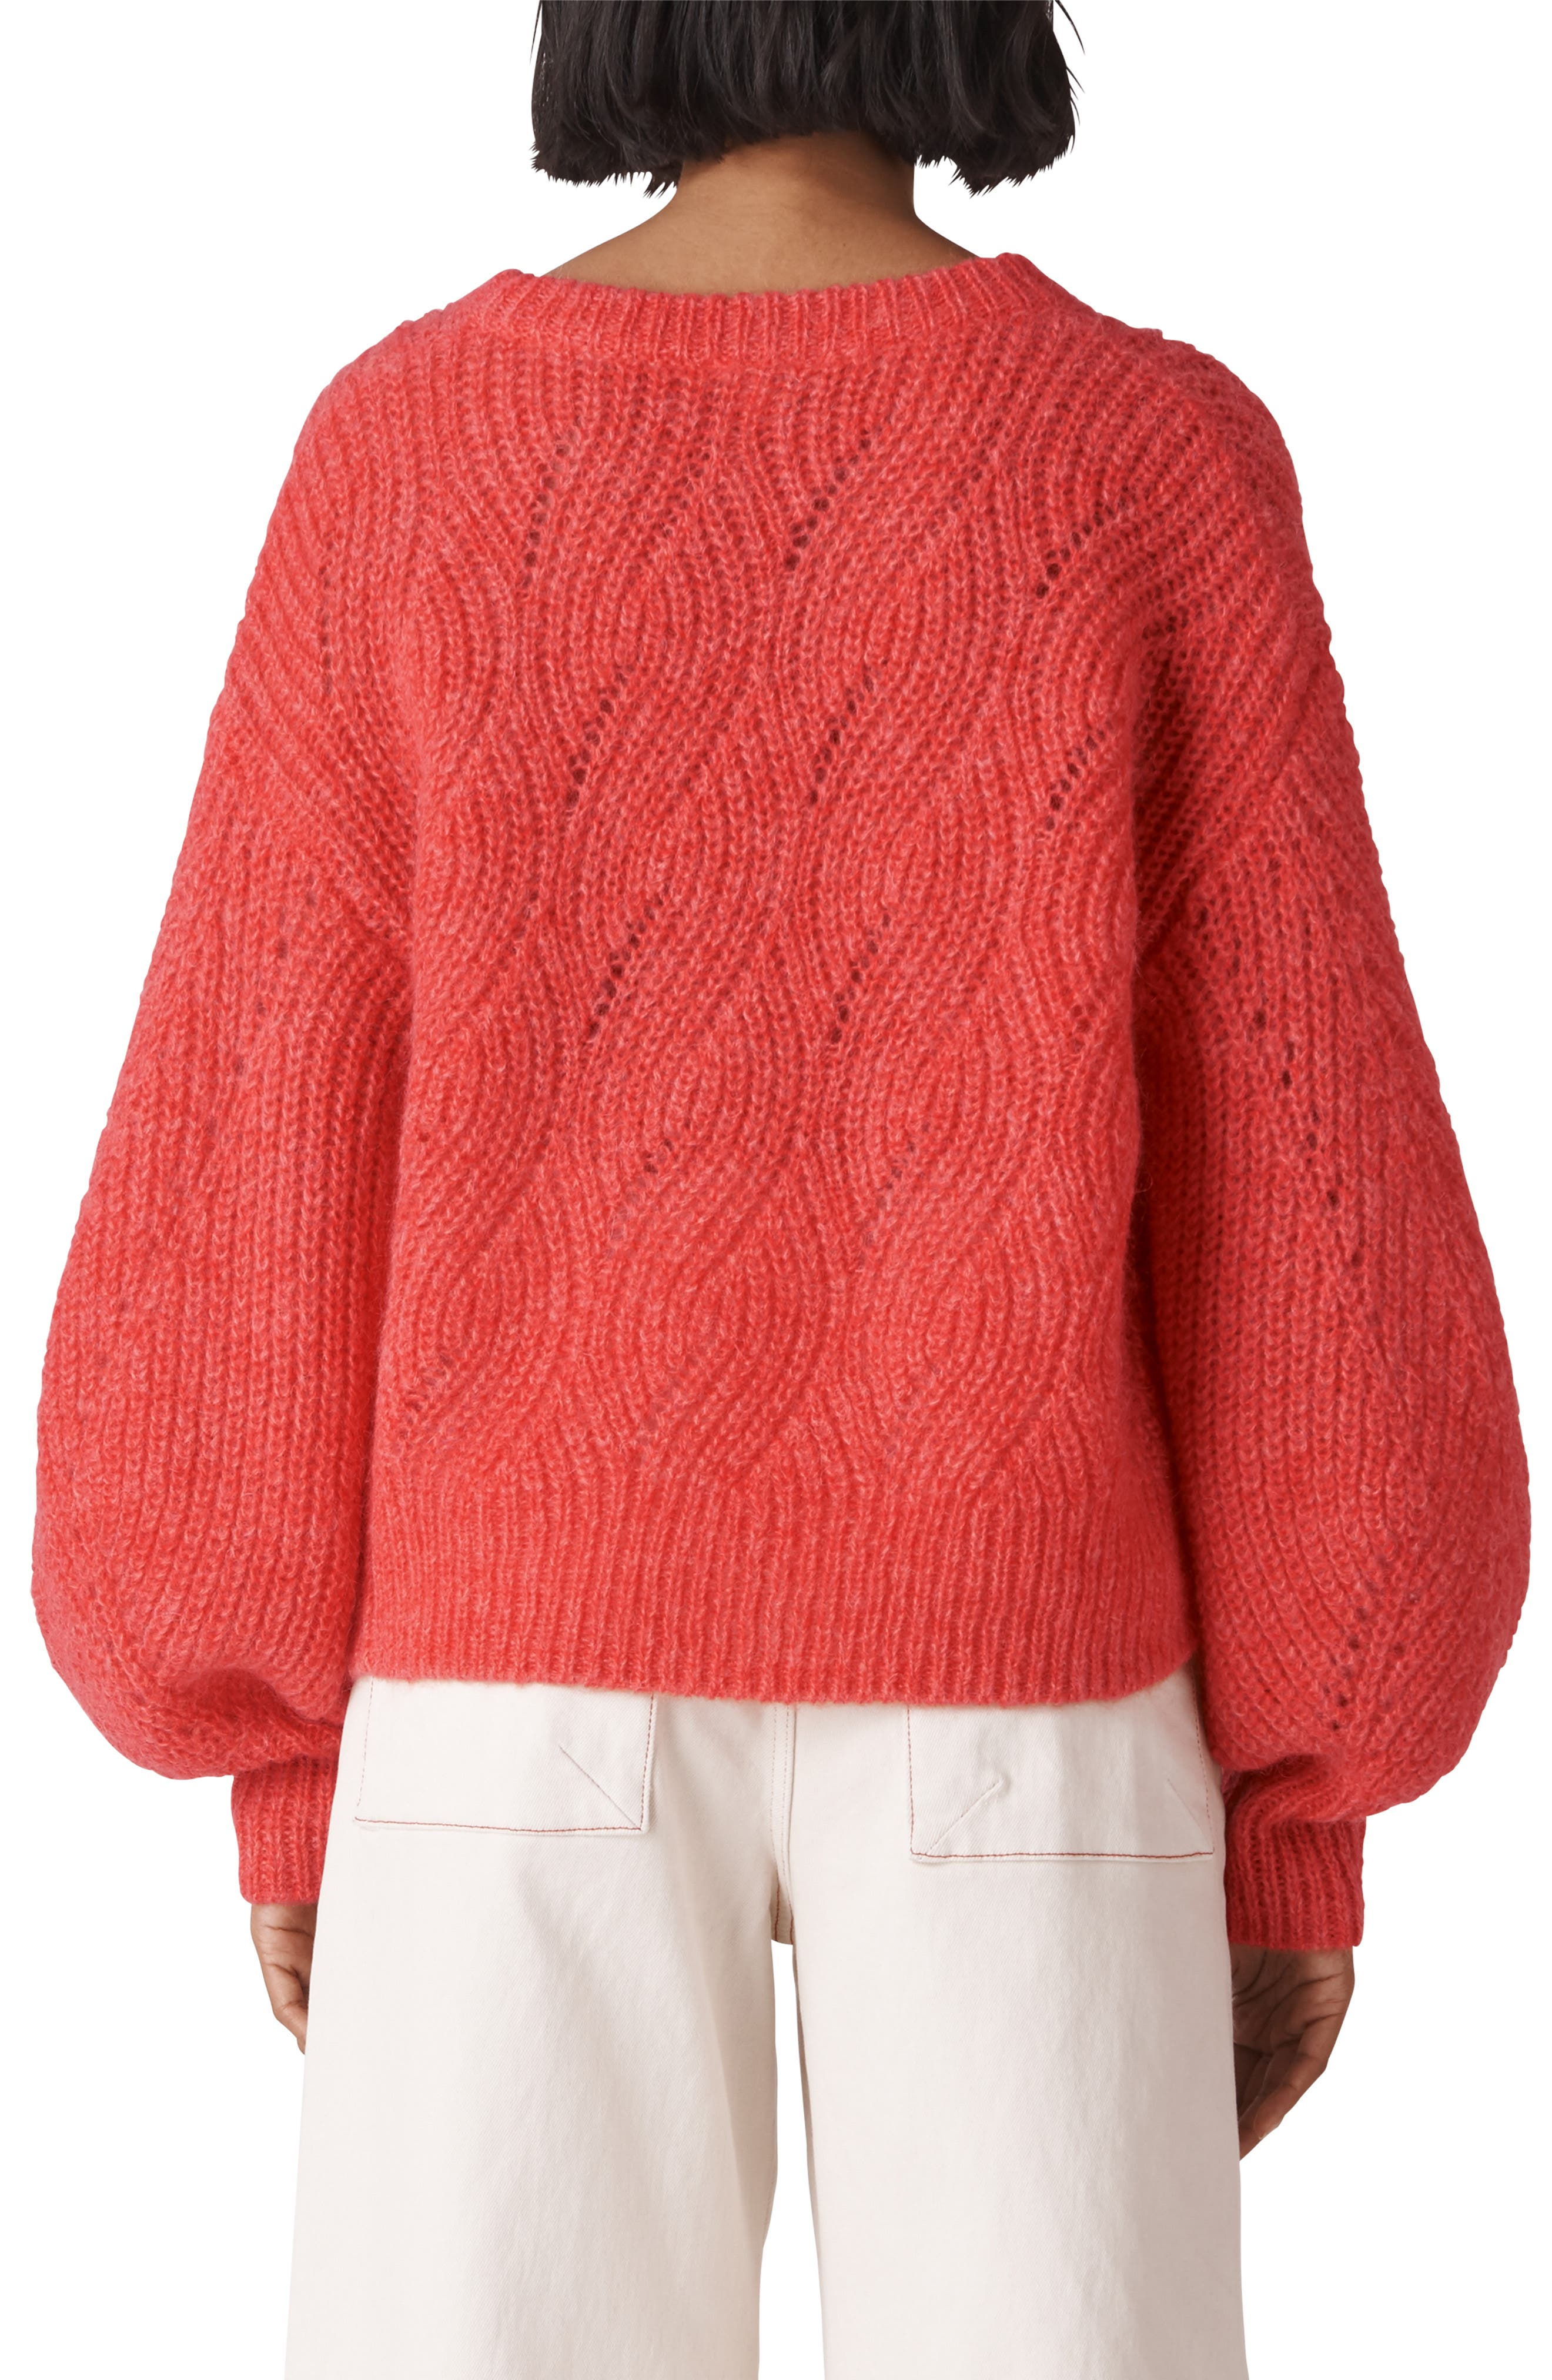 Sophia Wool Blend Sweater,                             Alternate thumbnail 2, color,                             RED